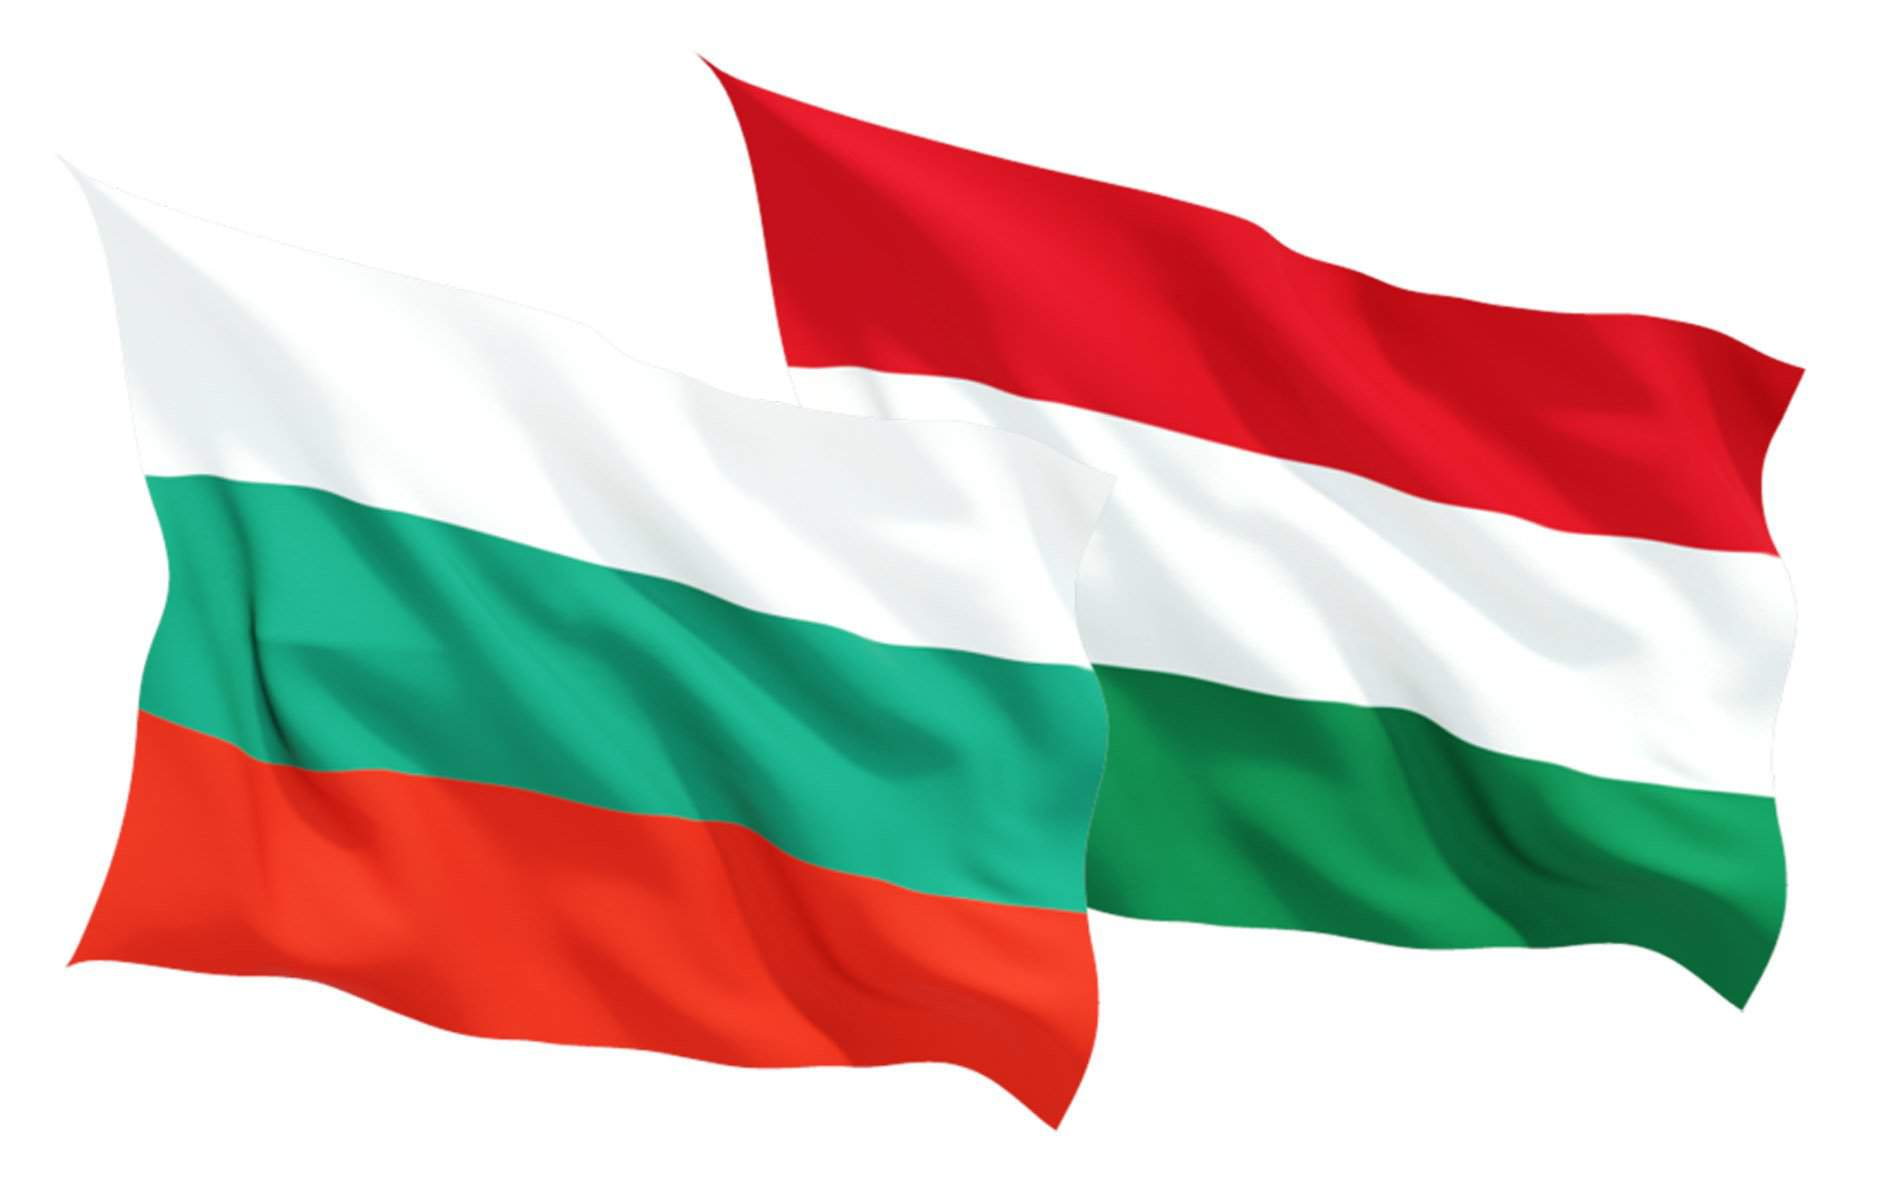 Economy minister discusses Hungary's vocational training system with Bulgarian counterpart